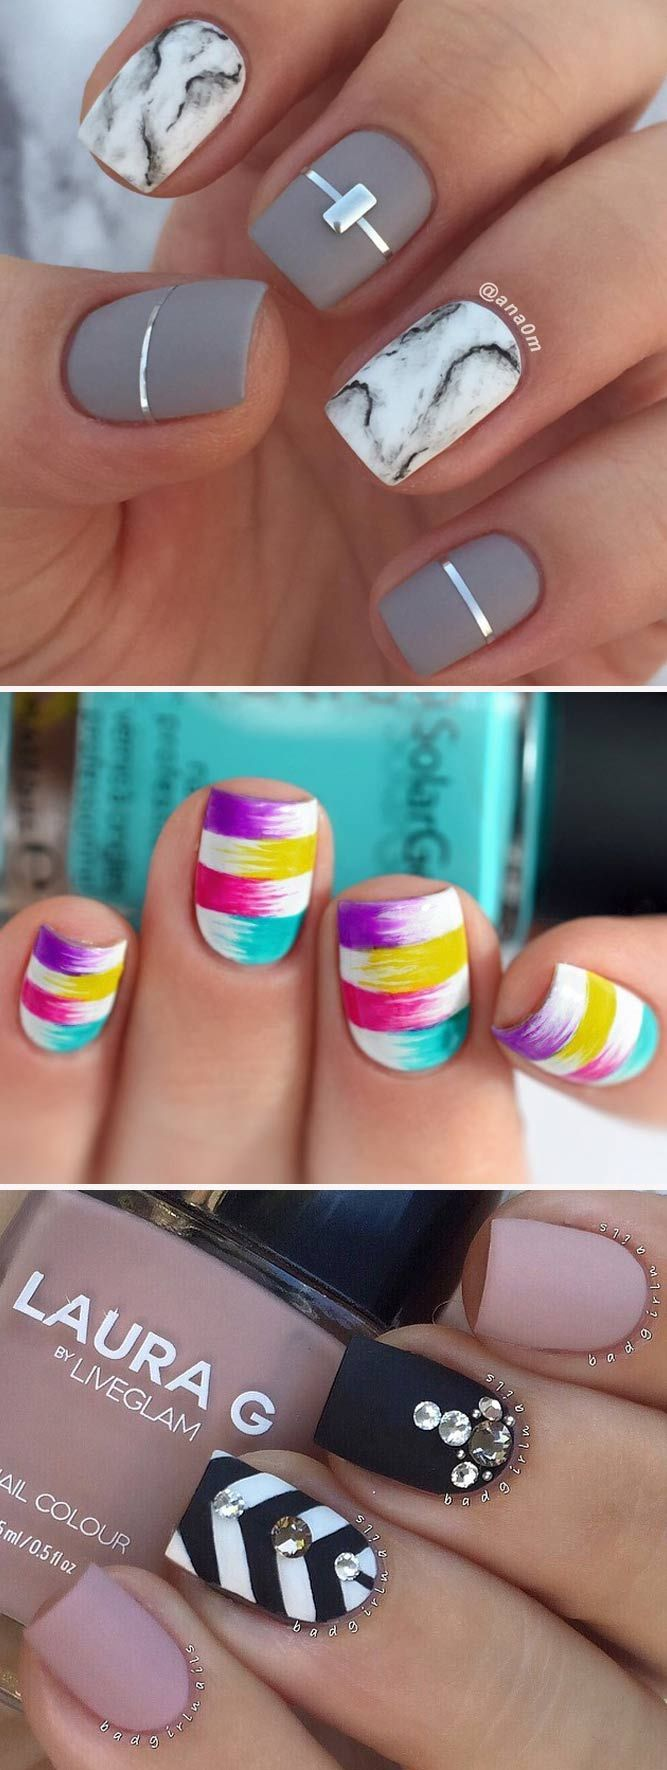 pretty nail designs youull want to copy immediately nails